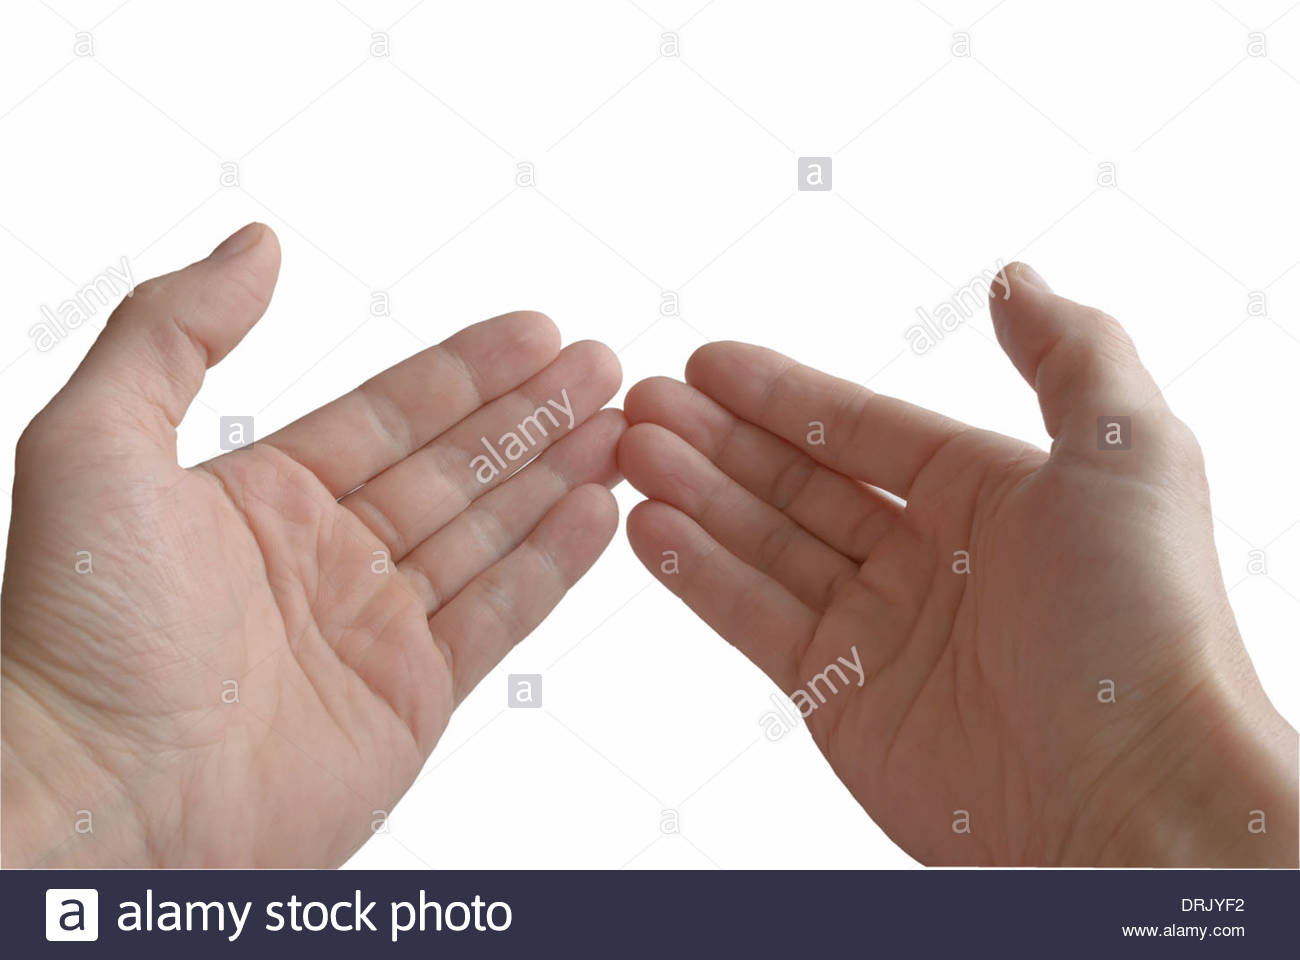 Two palms, close-up, in gesture of the prayer, on white background, isolated. - Stock Image